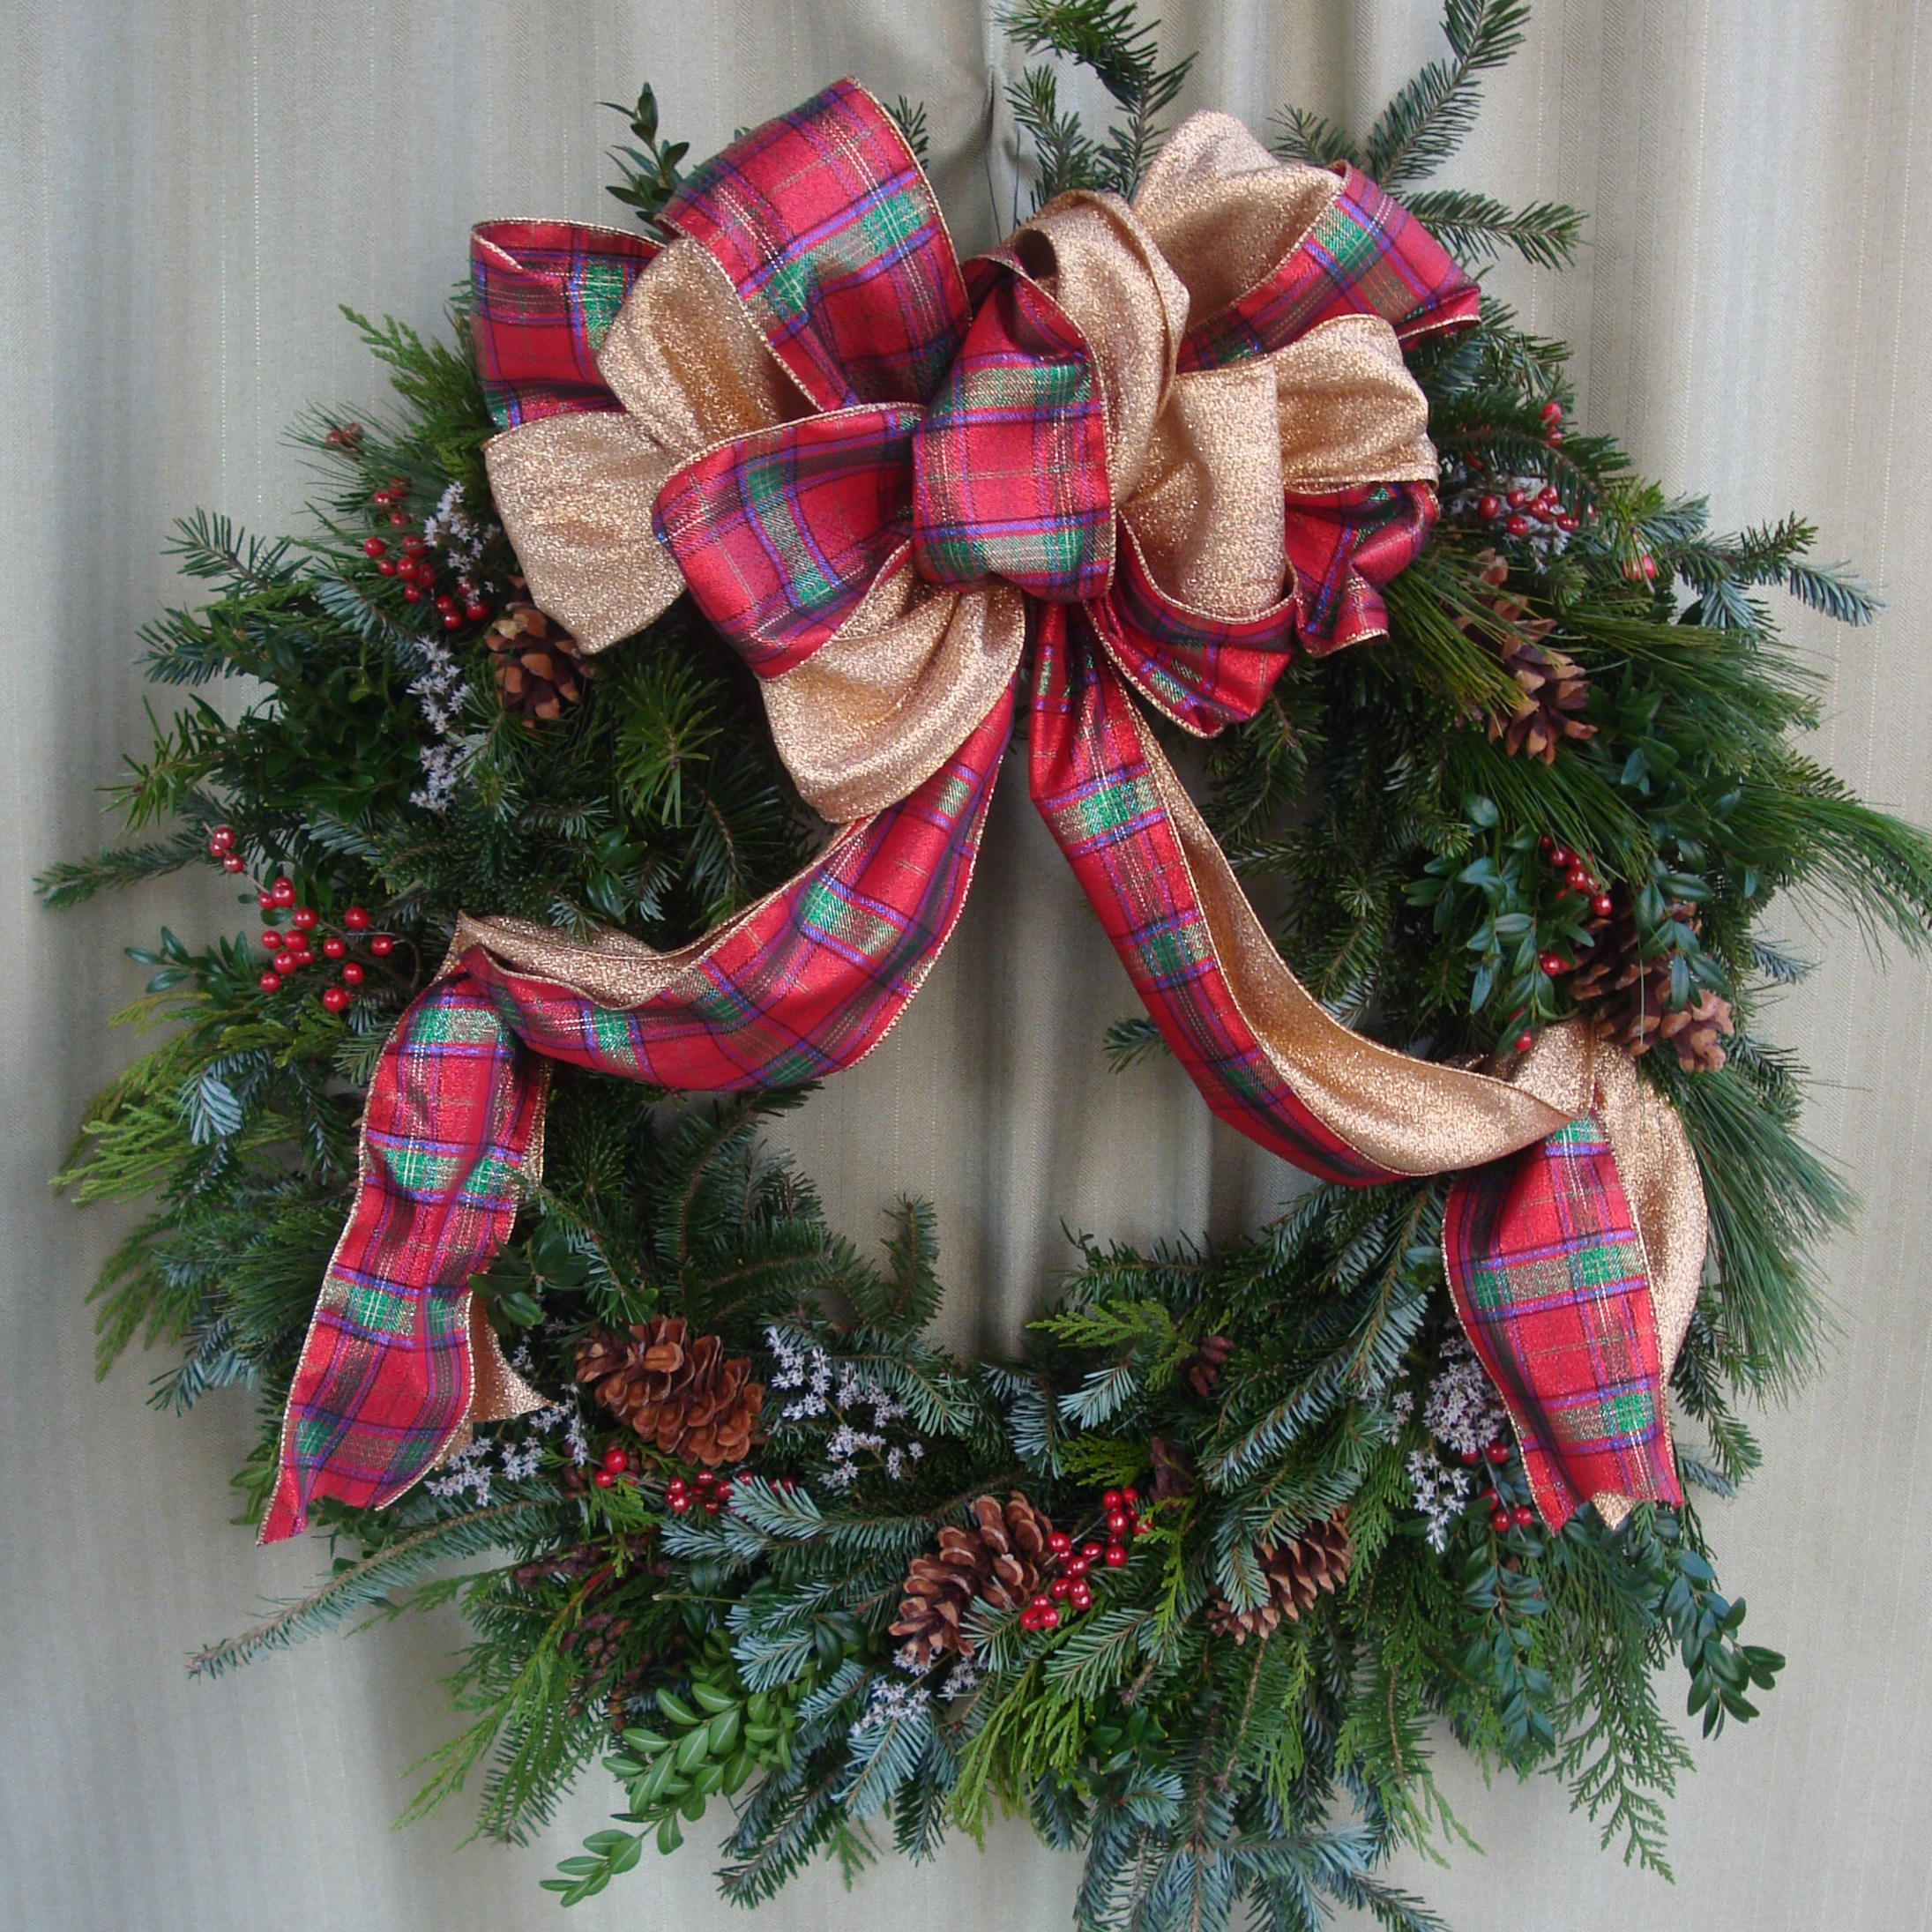 W- Mixed wreath gold and red plaid ribbon.jpg